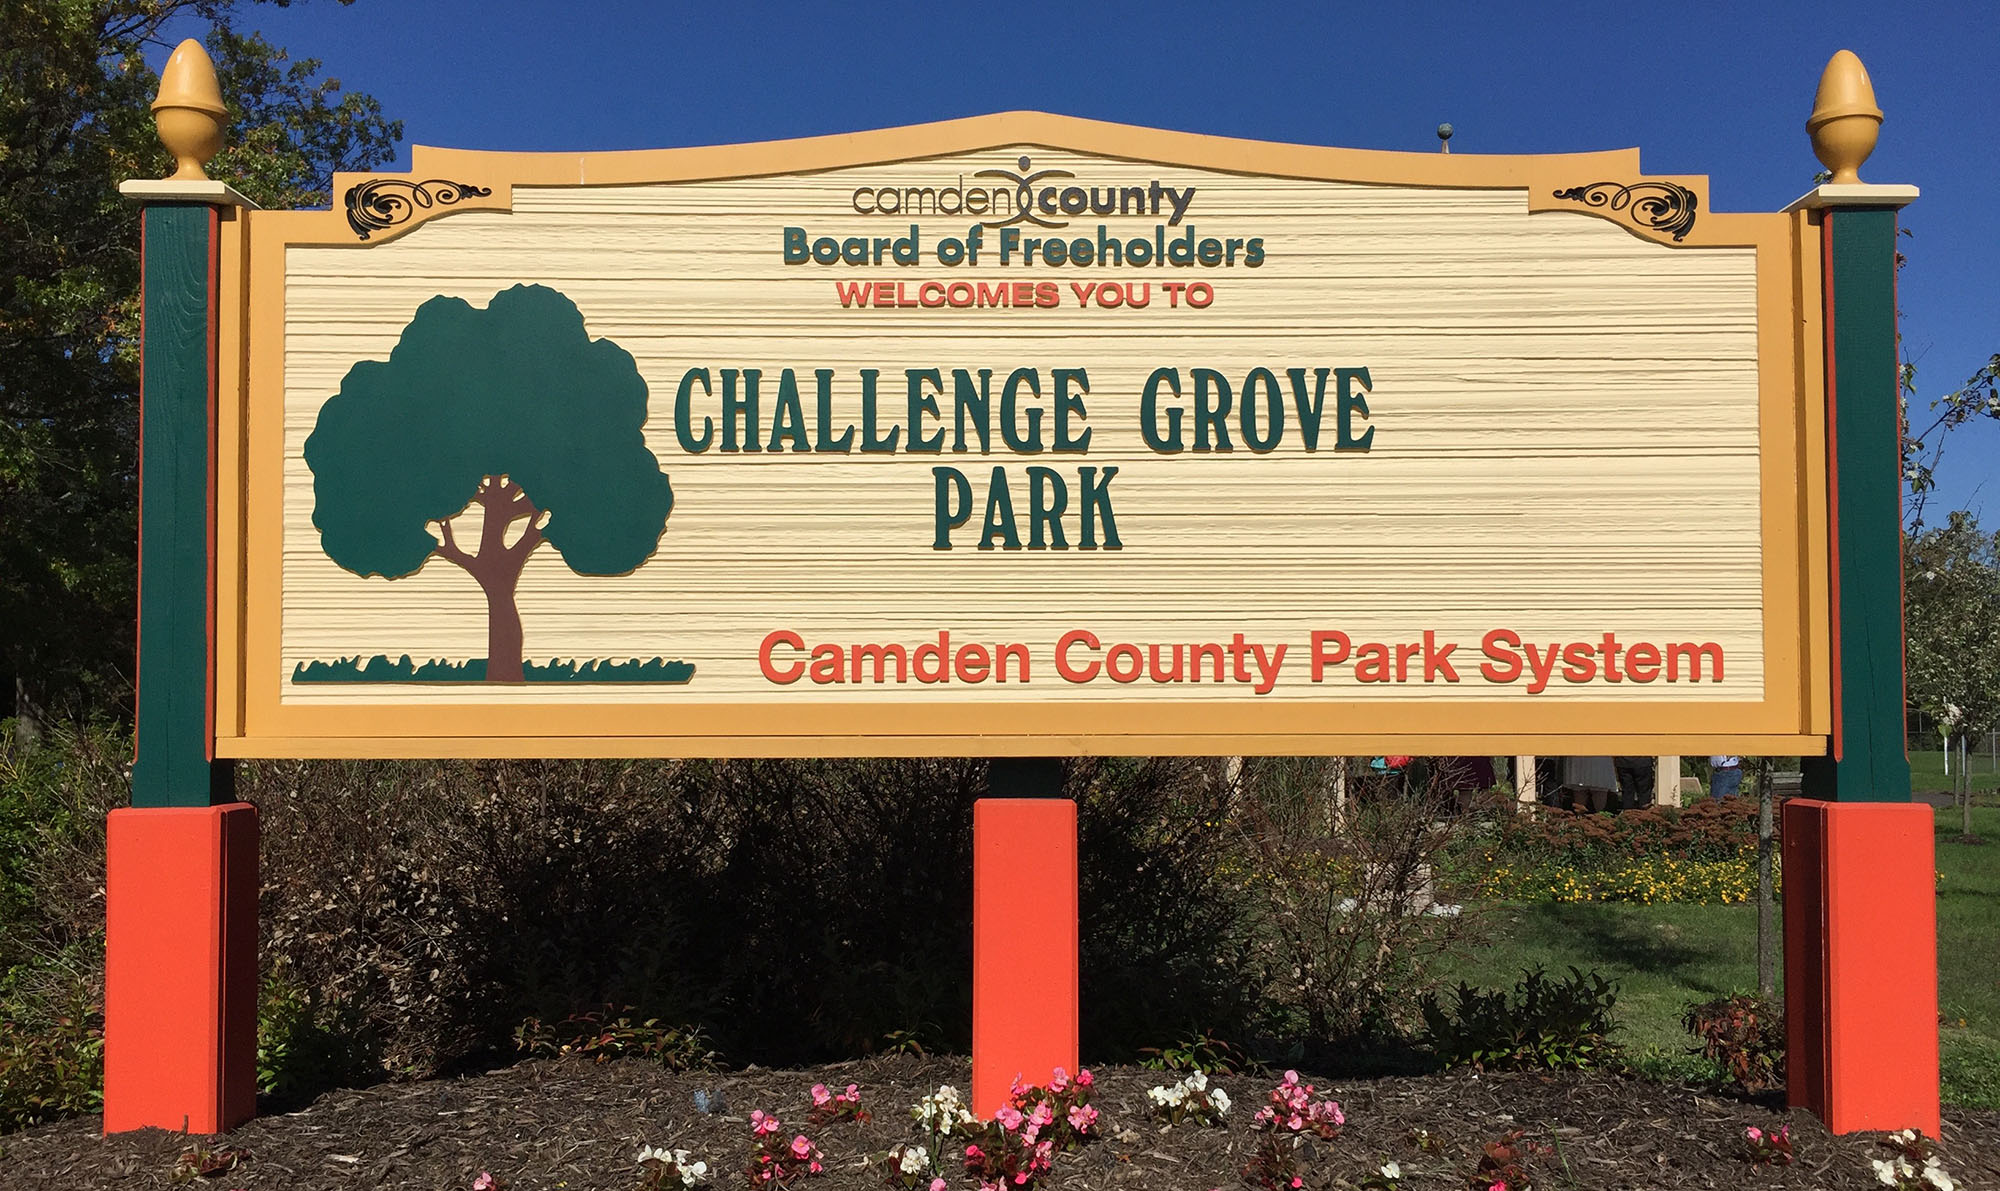 Award-winning Challenge Grove Park in Cherry Hill, New Jersey is the home of Jake's Place and Boundless Field - the home of the Camden County NJ Miracle League.